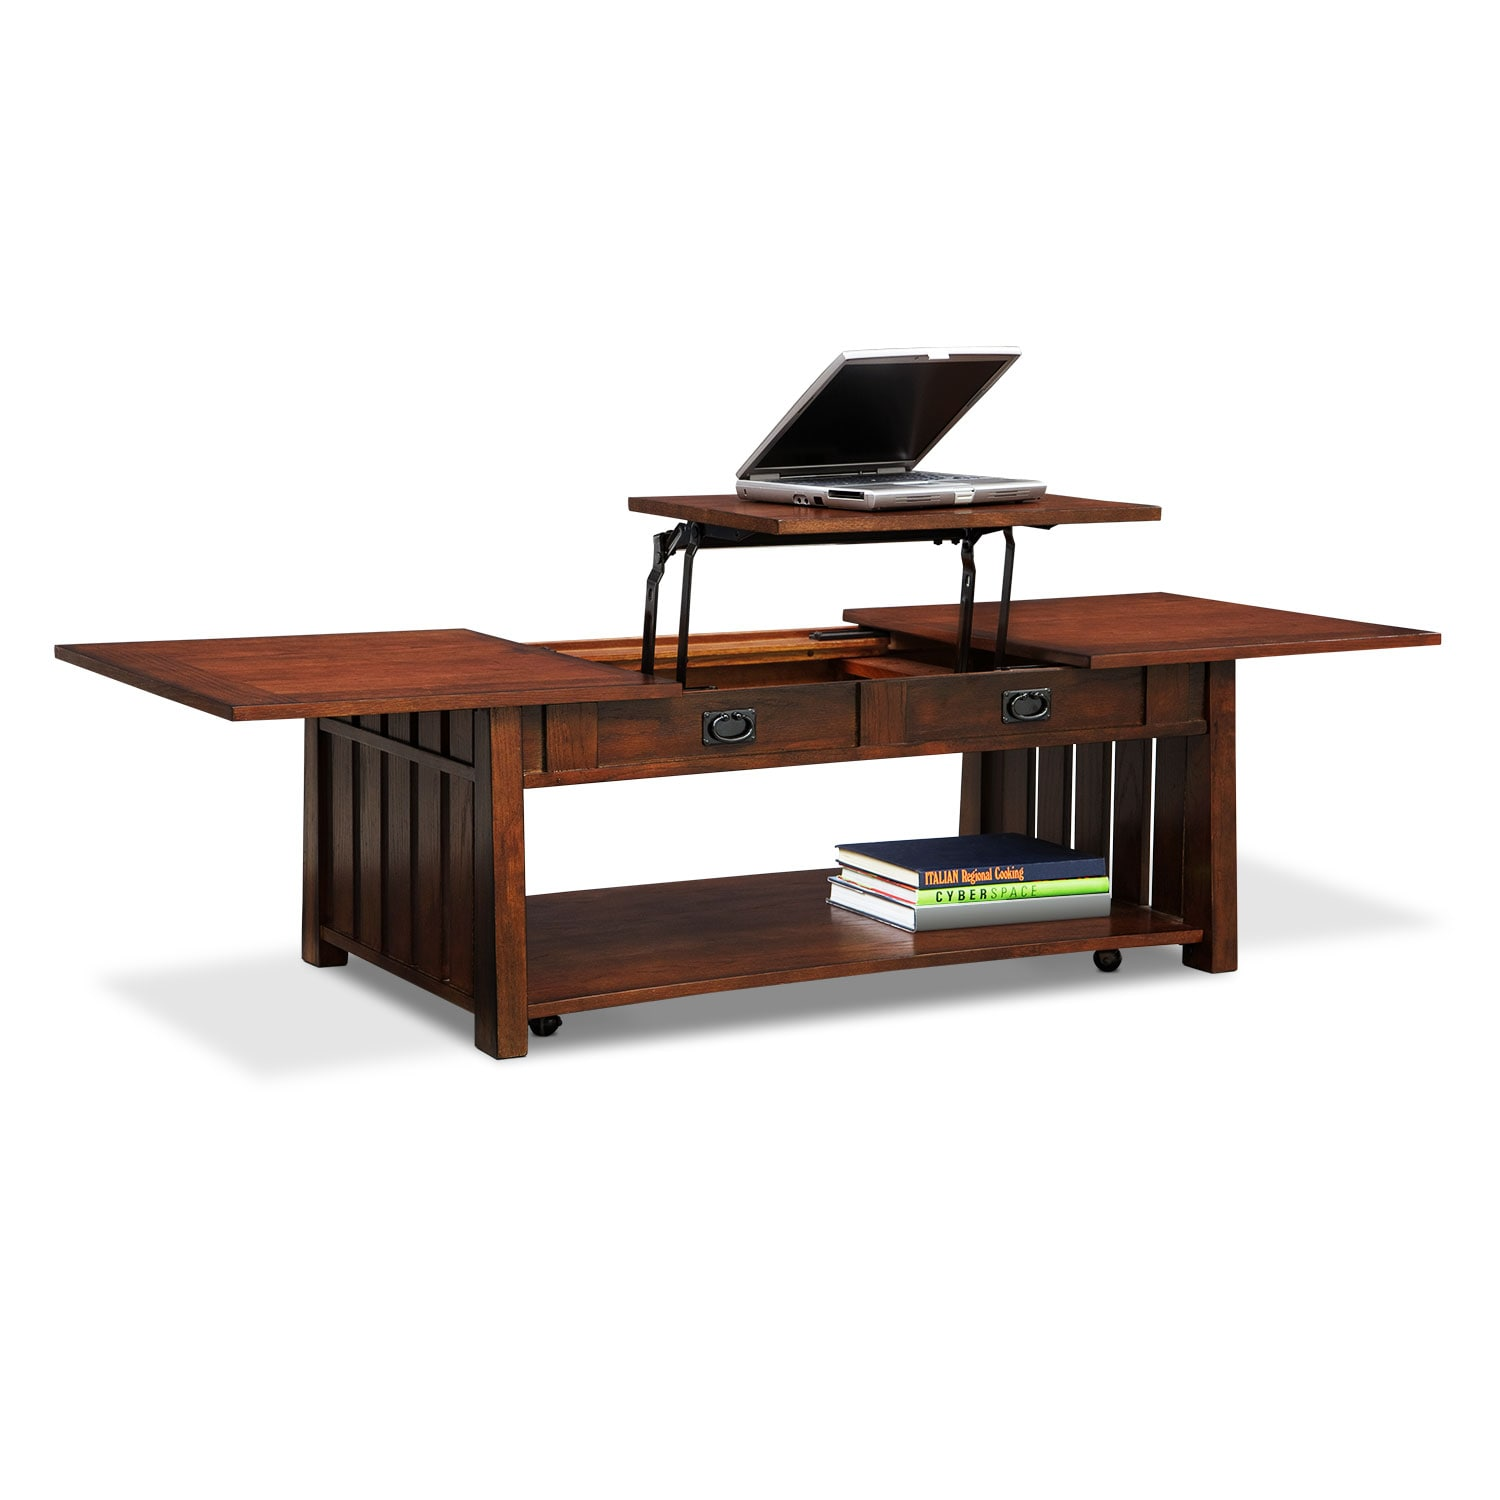 Lift Top Coffee Table Cherry: Tribute Lift-Top Coffee Table - Cherry